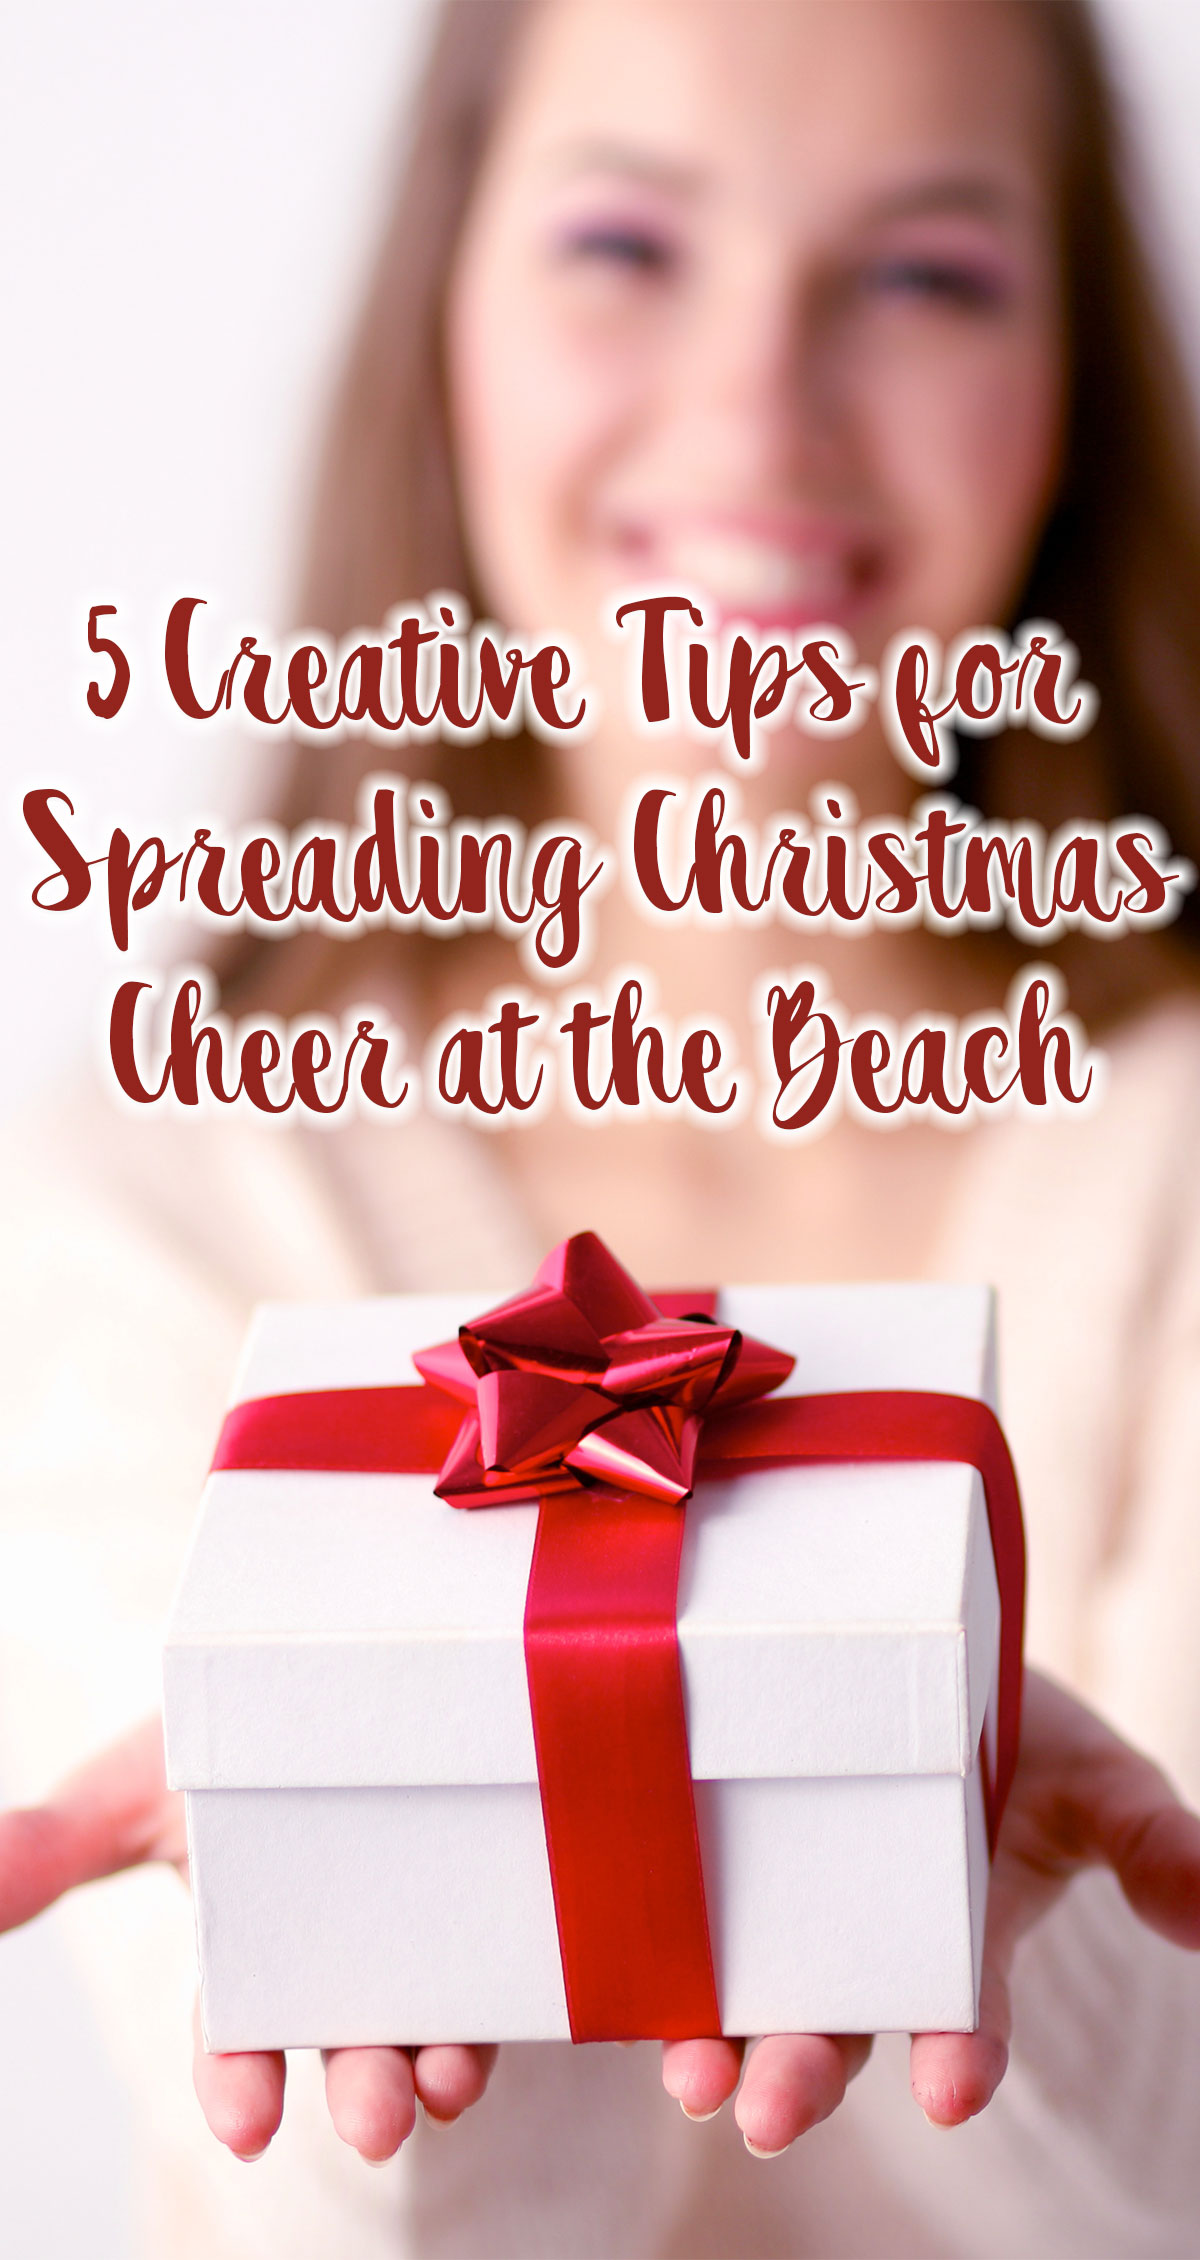 5 Creative Tips for Spreading Christmas Cheer at the Beach Pin